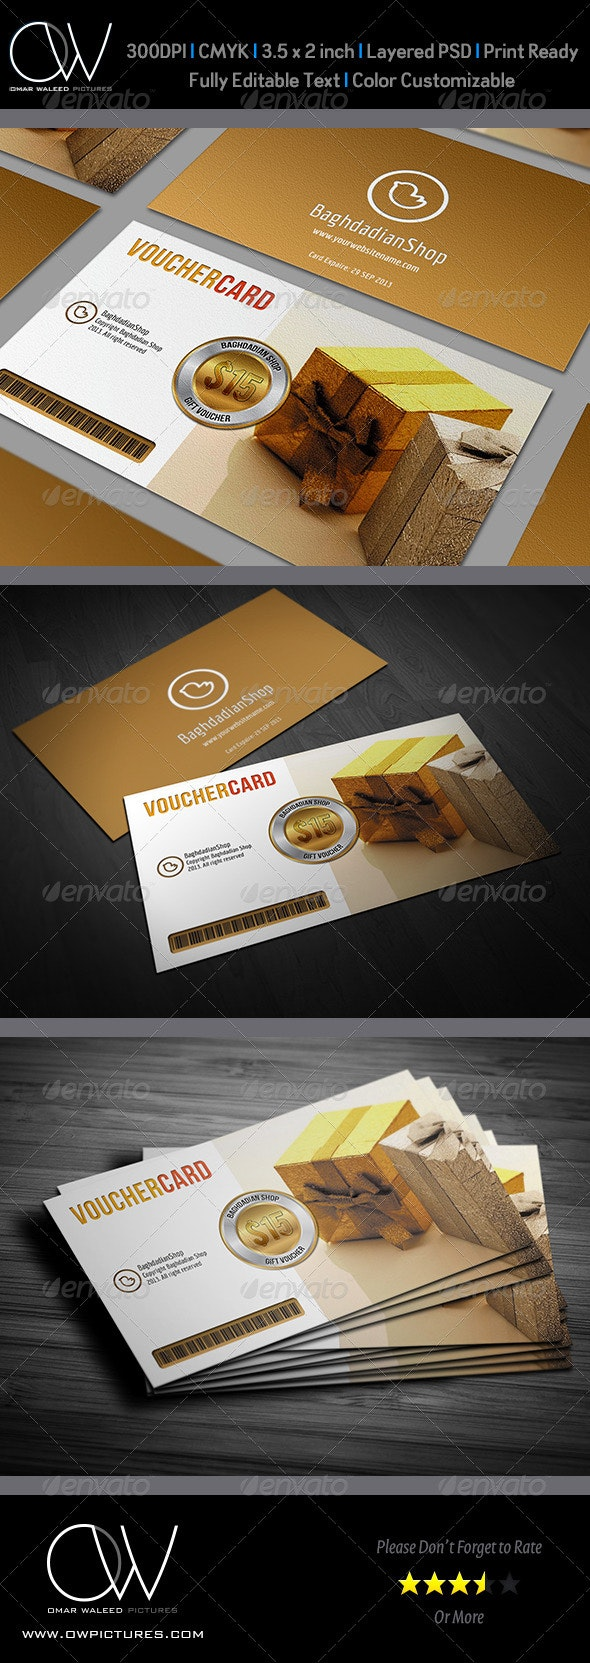 Gift / Voucher Card Vol.3 - Cards & Invites Print Templates